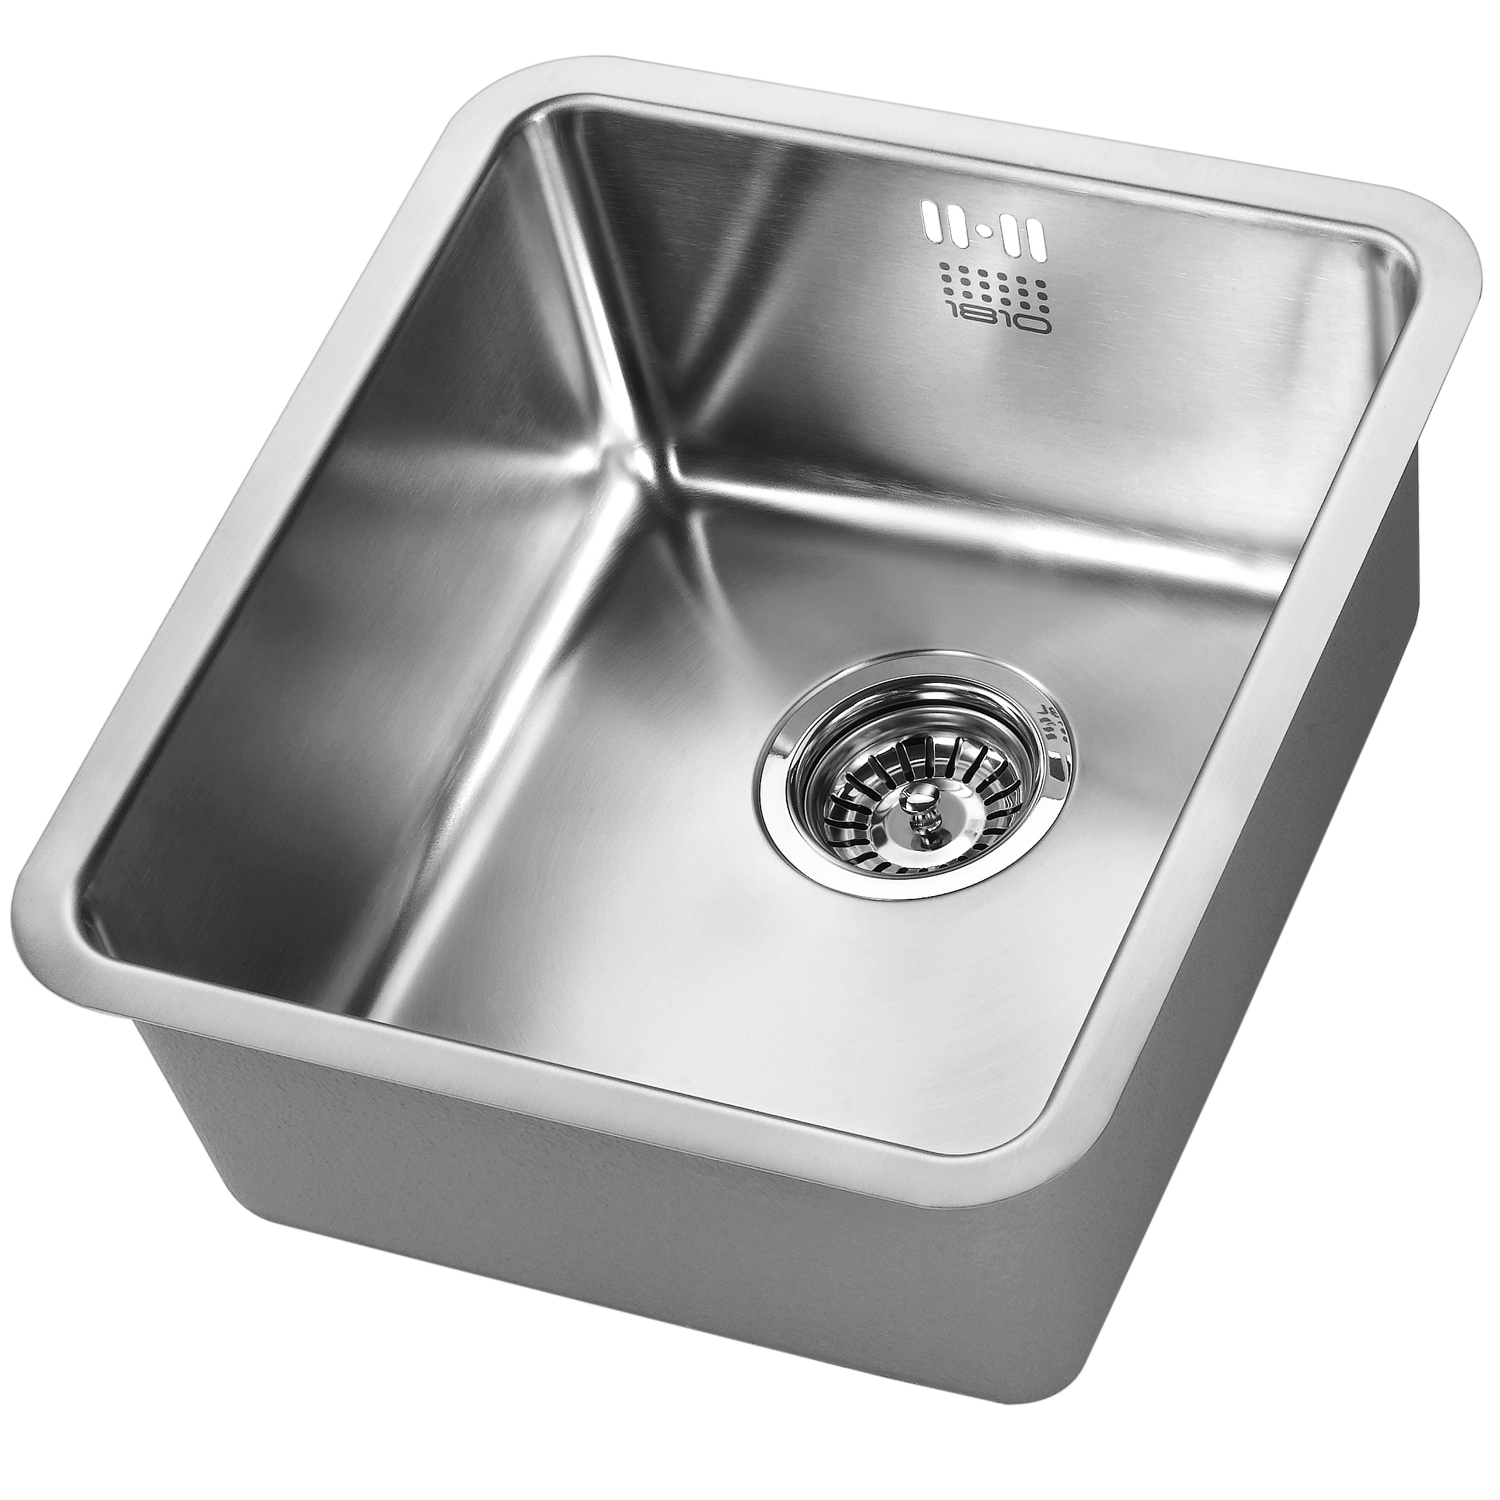 The 1810 Company Luxsouno25 340U 1.0 Bowl Kitchen Sink - Stainless Steel